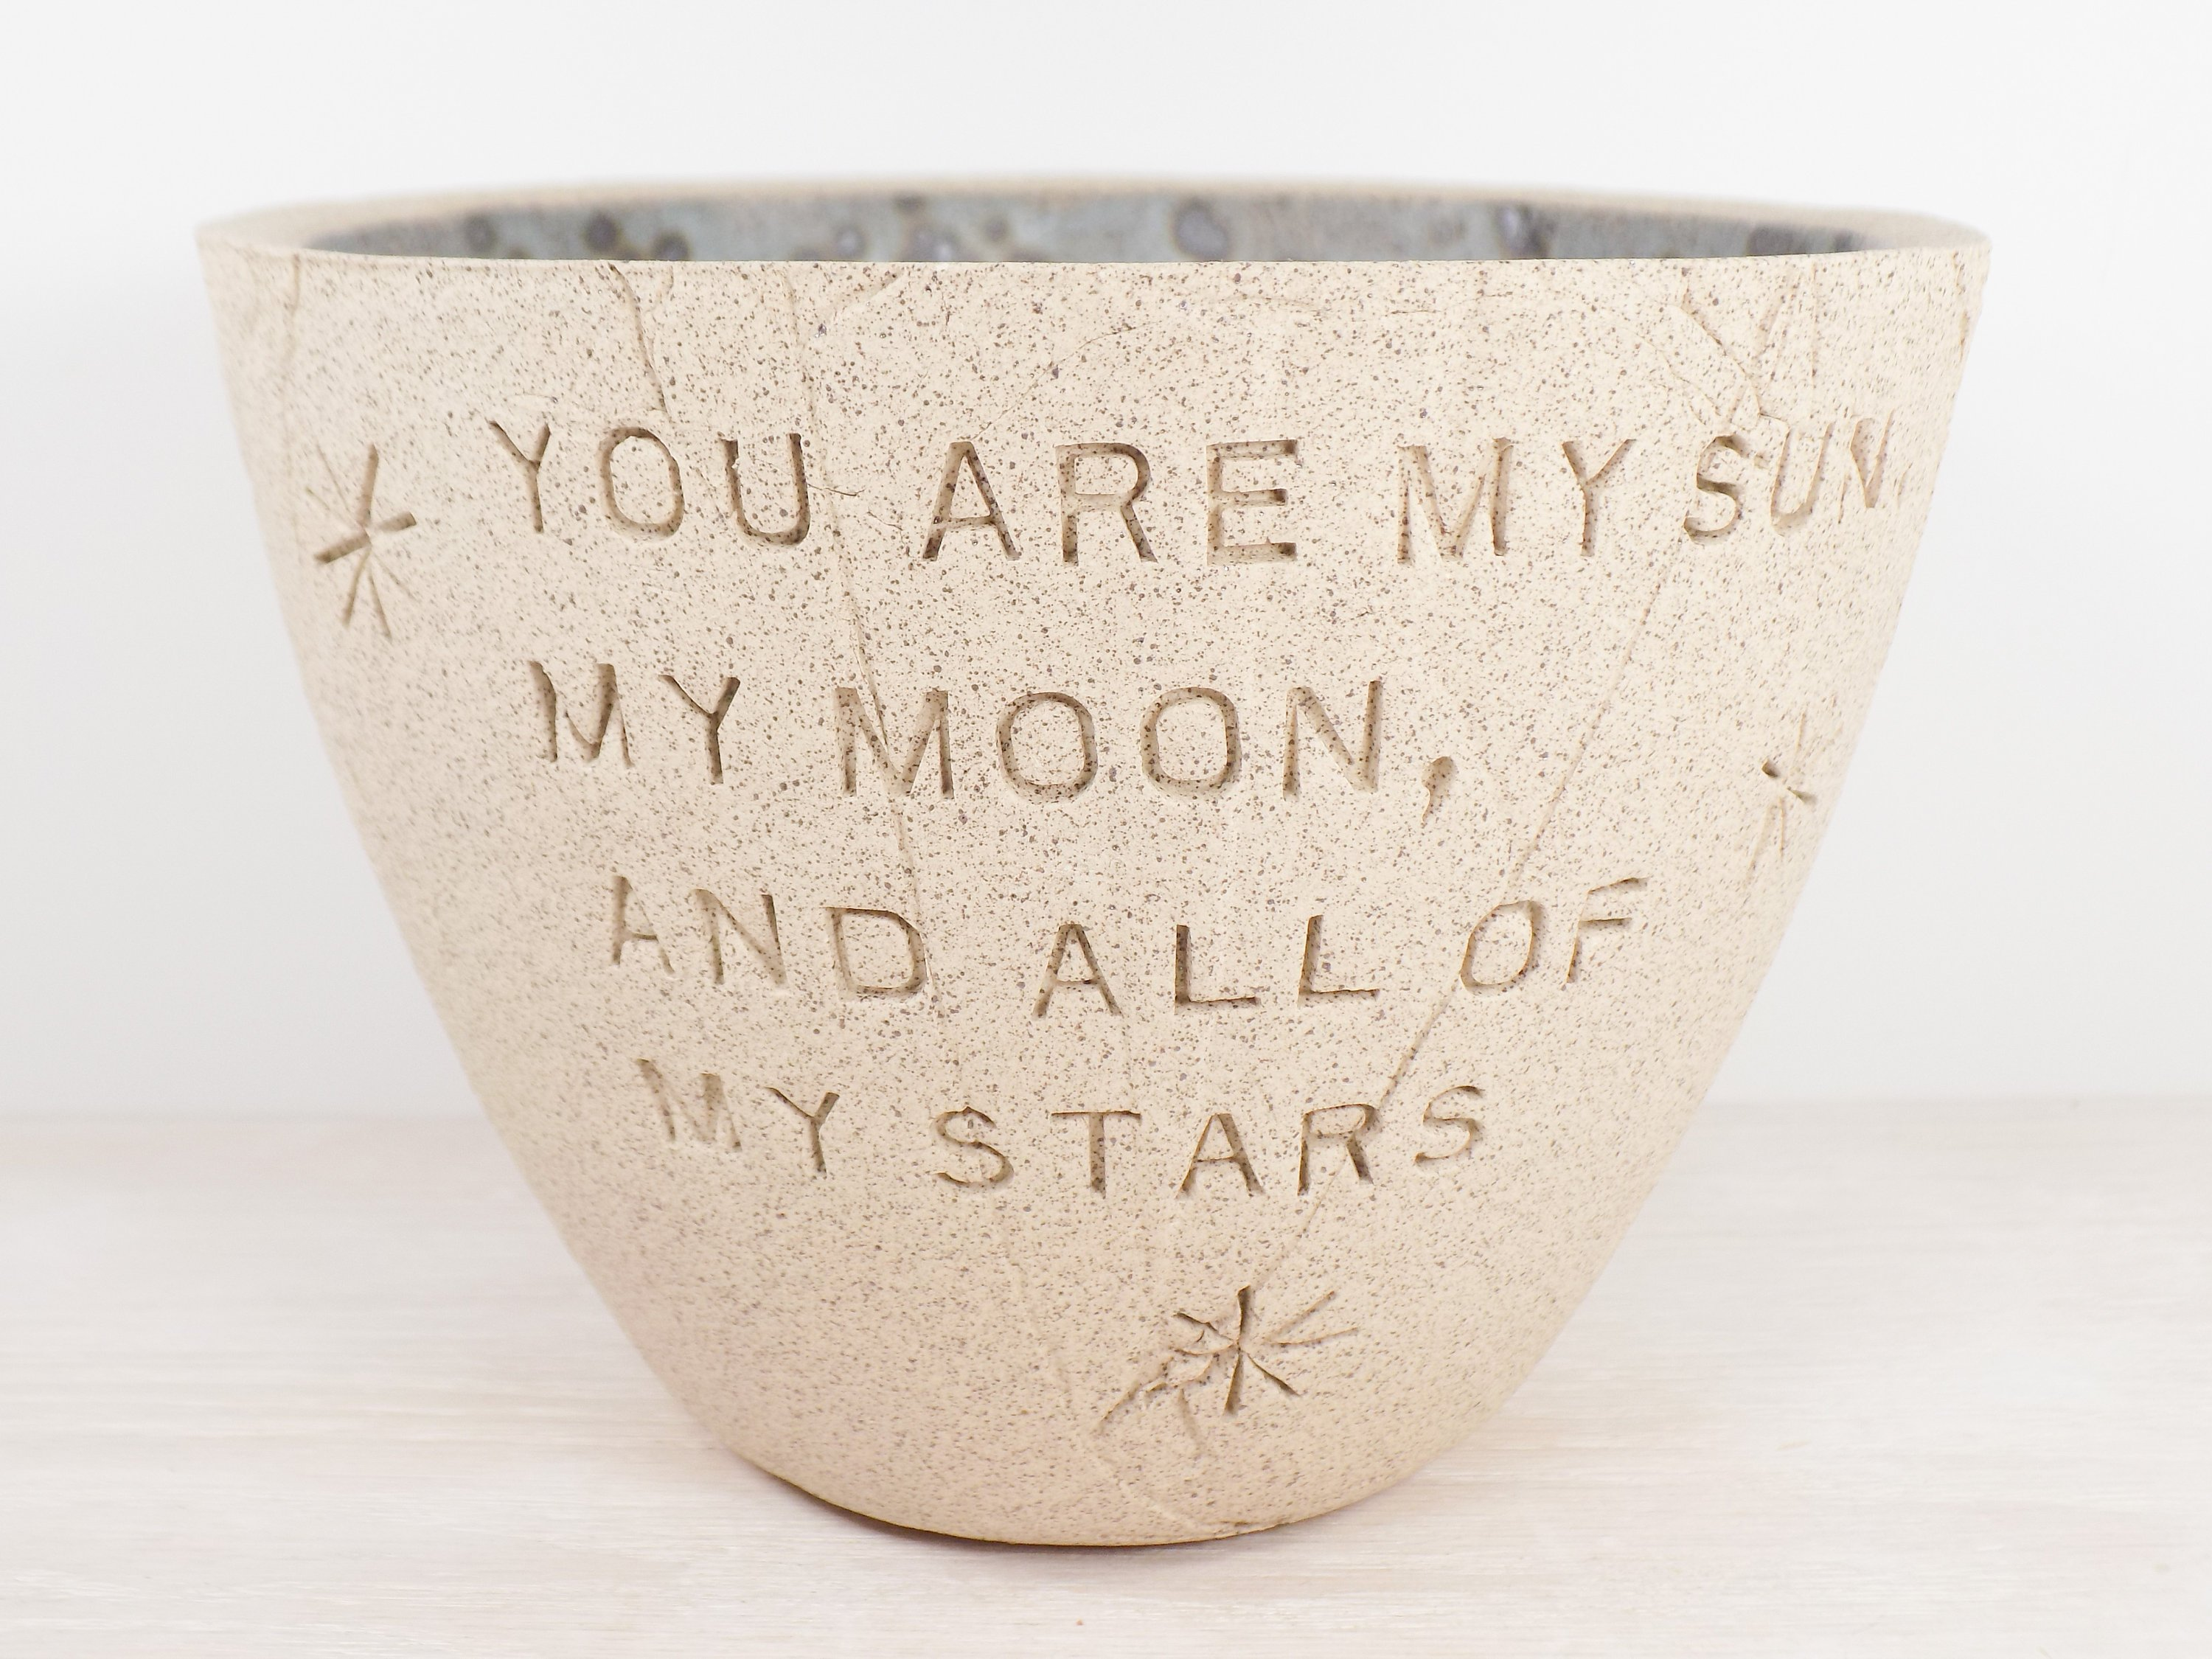 Creative personalized gifts: Custom pottery bowls with poetry lines, sayings, or names at Braidwood Pottery